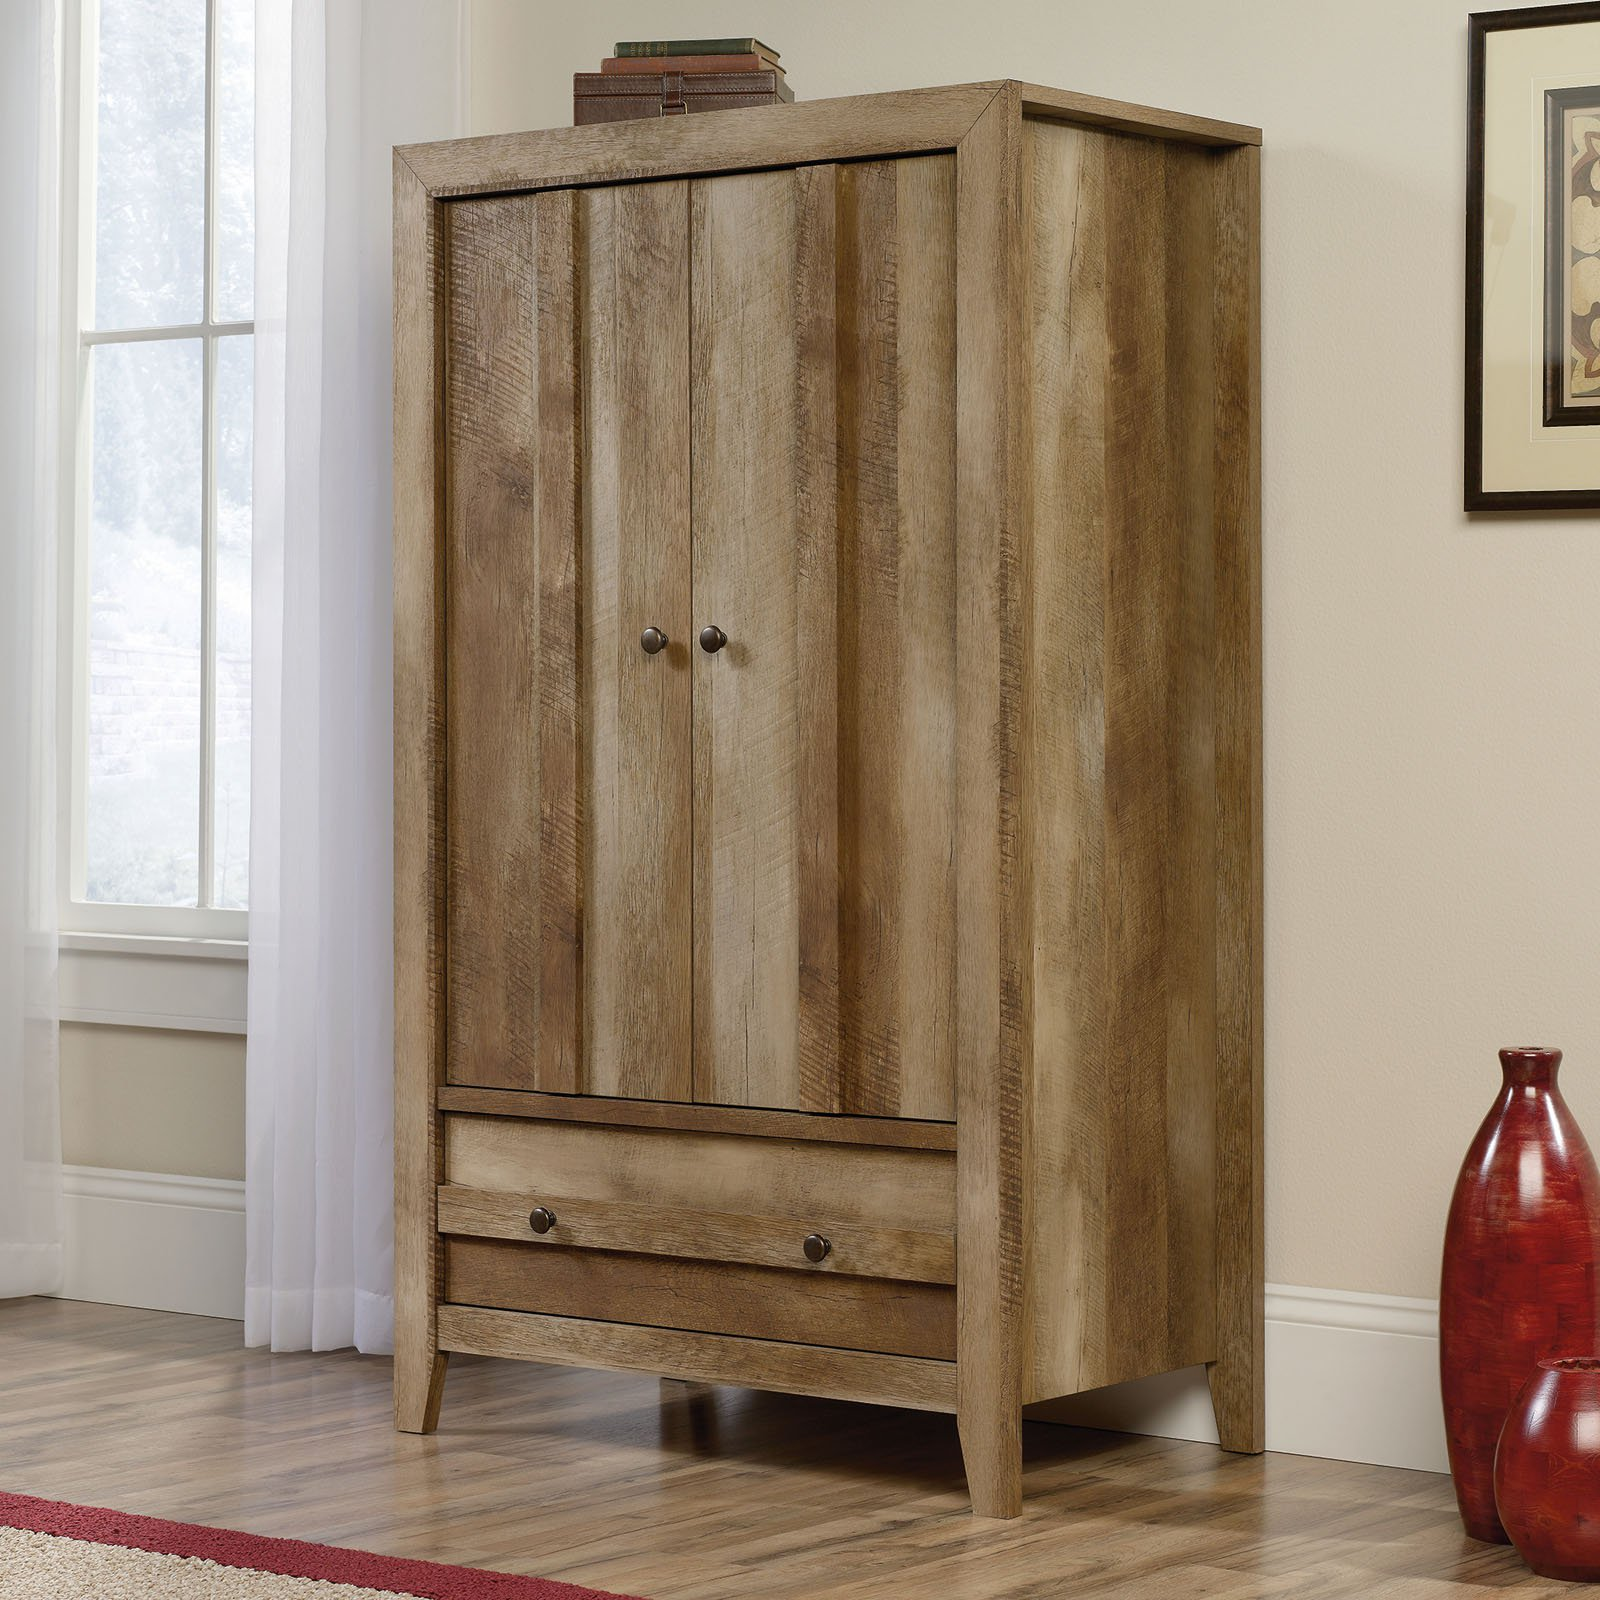 Sauder Dakota Pass Armoire, Craftsman Oak Finish by Sauder Woodworking